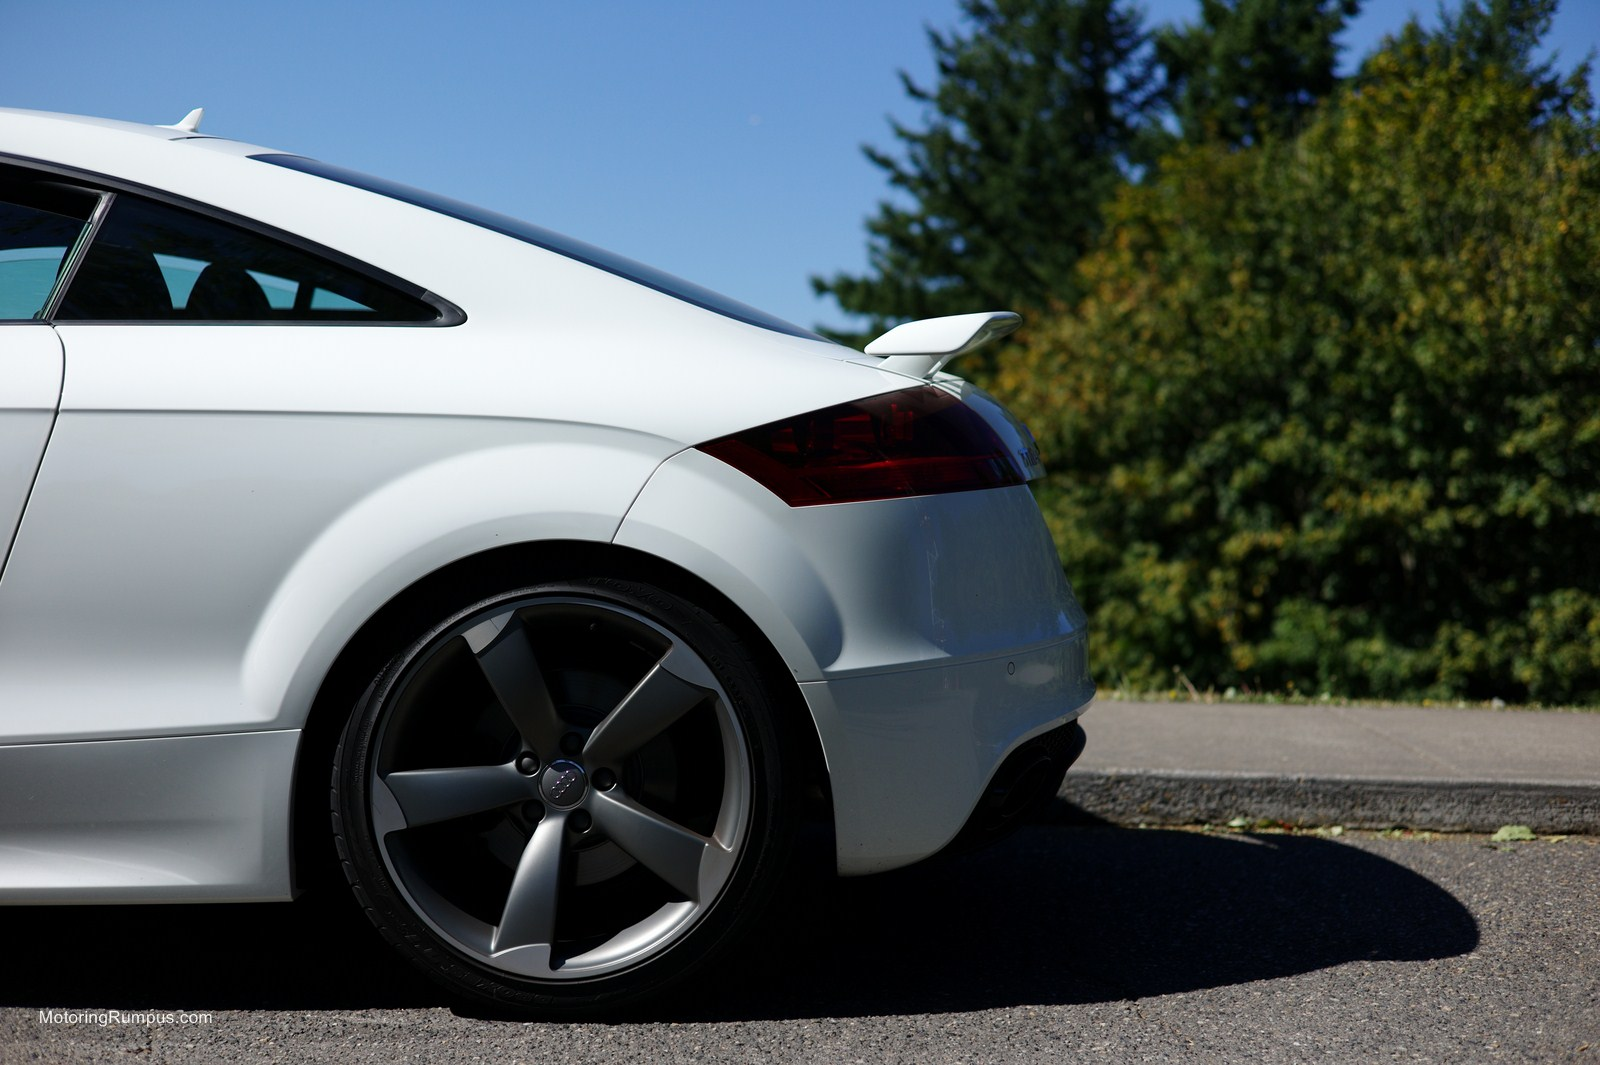 2015 Mustang Wheels >> 2013 Audi TT RS Wheels - Motoring Rumpus